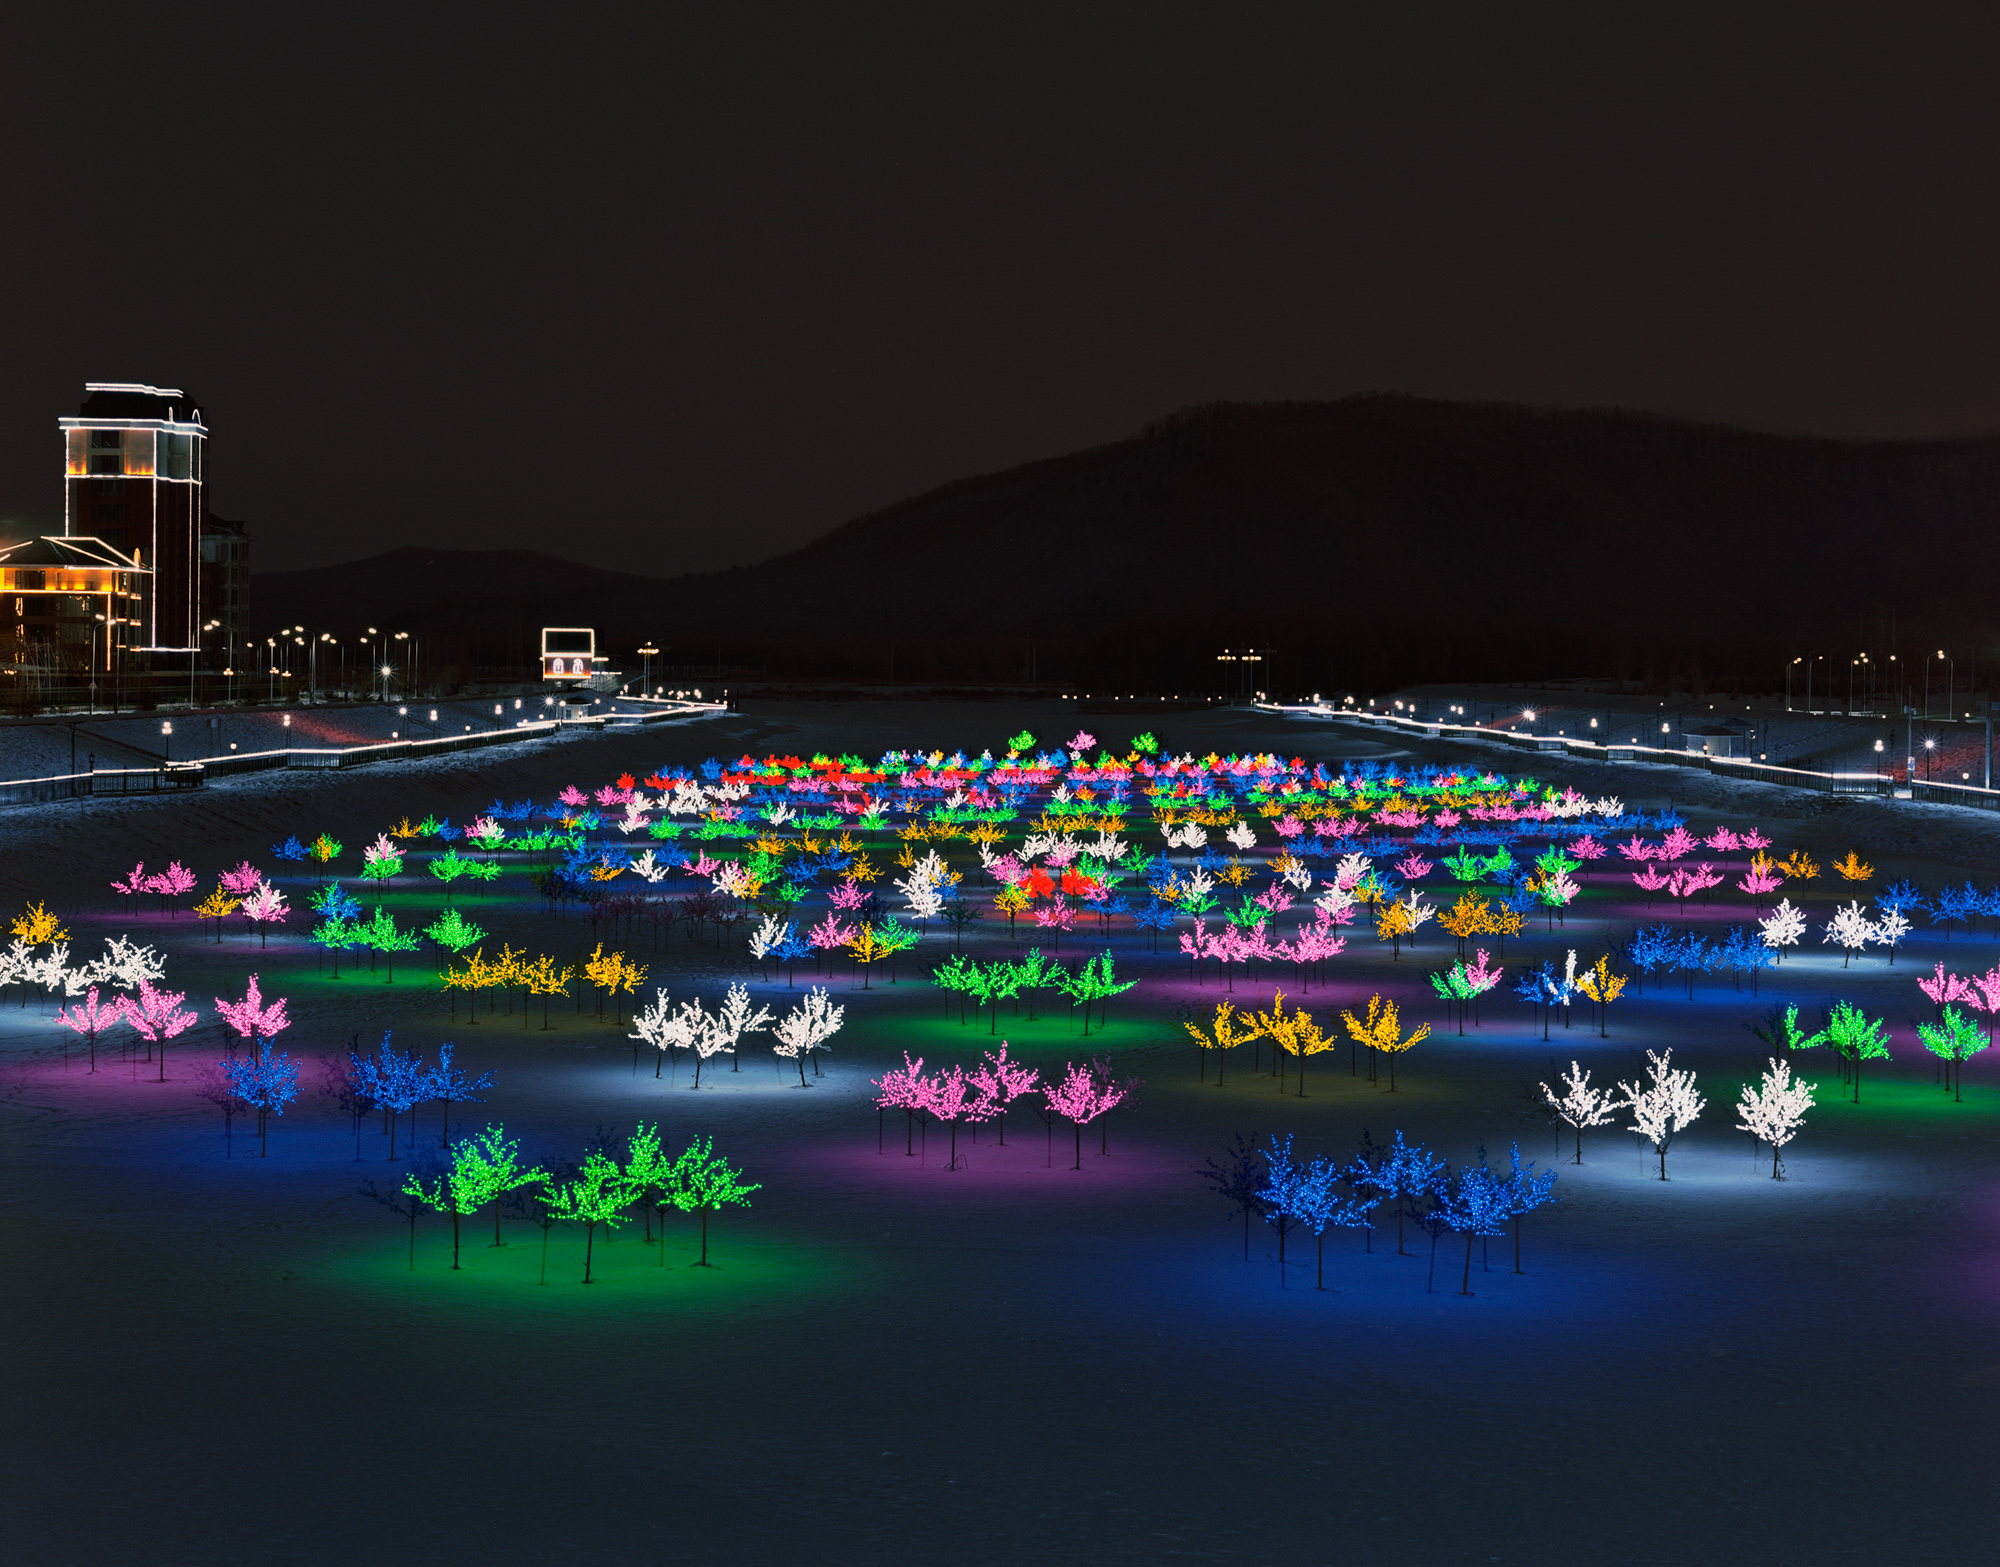 Plastic trees with colorful light bulbs glow on a frozen river in Yichun.